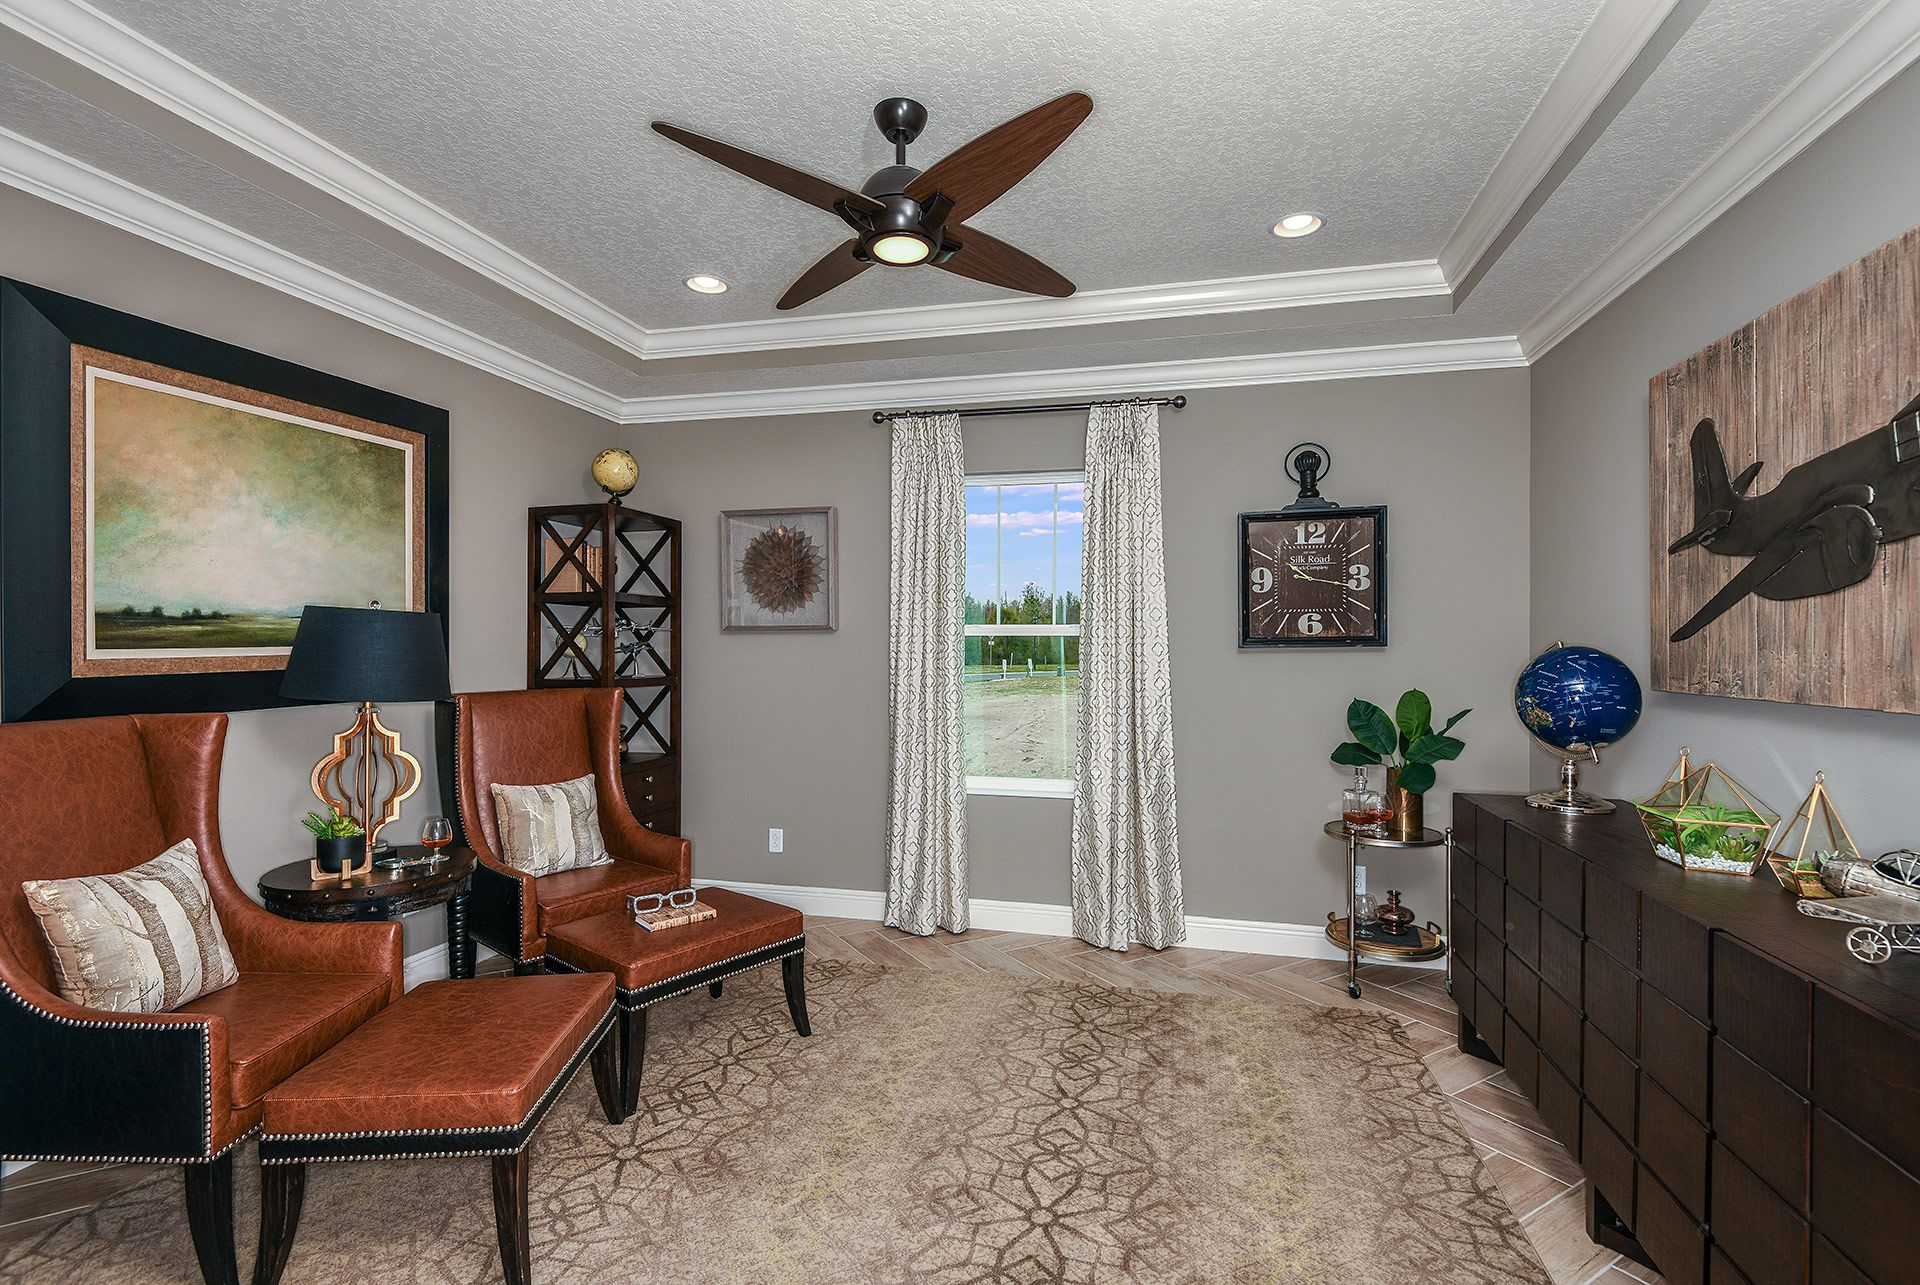 Living Area featured in the Bayshore II By Homes by WestBay in Tampa-St. Petersburg, FL